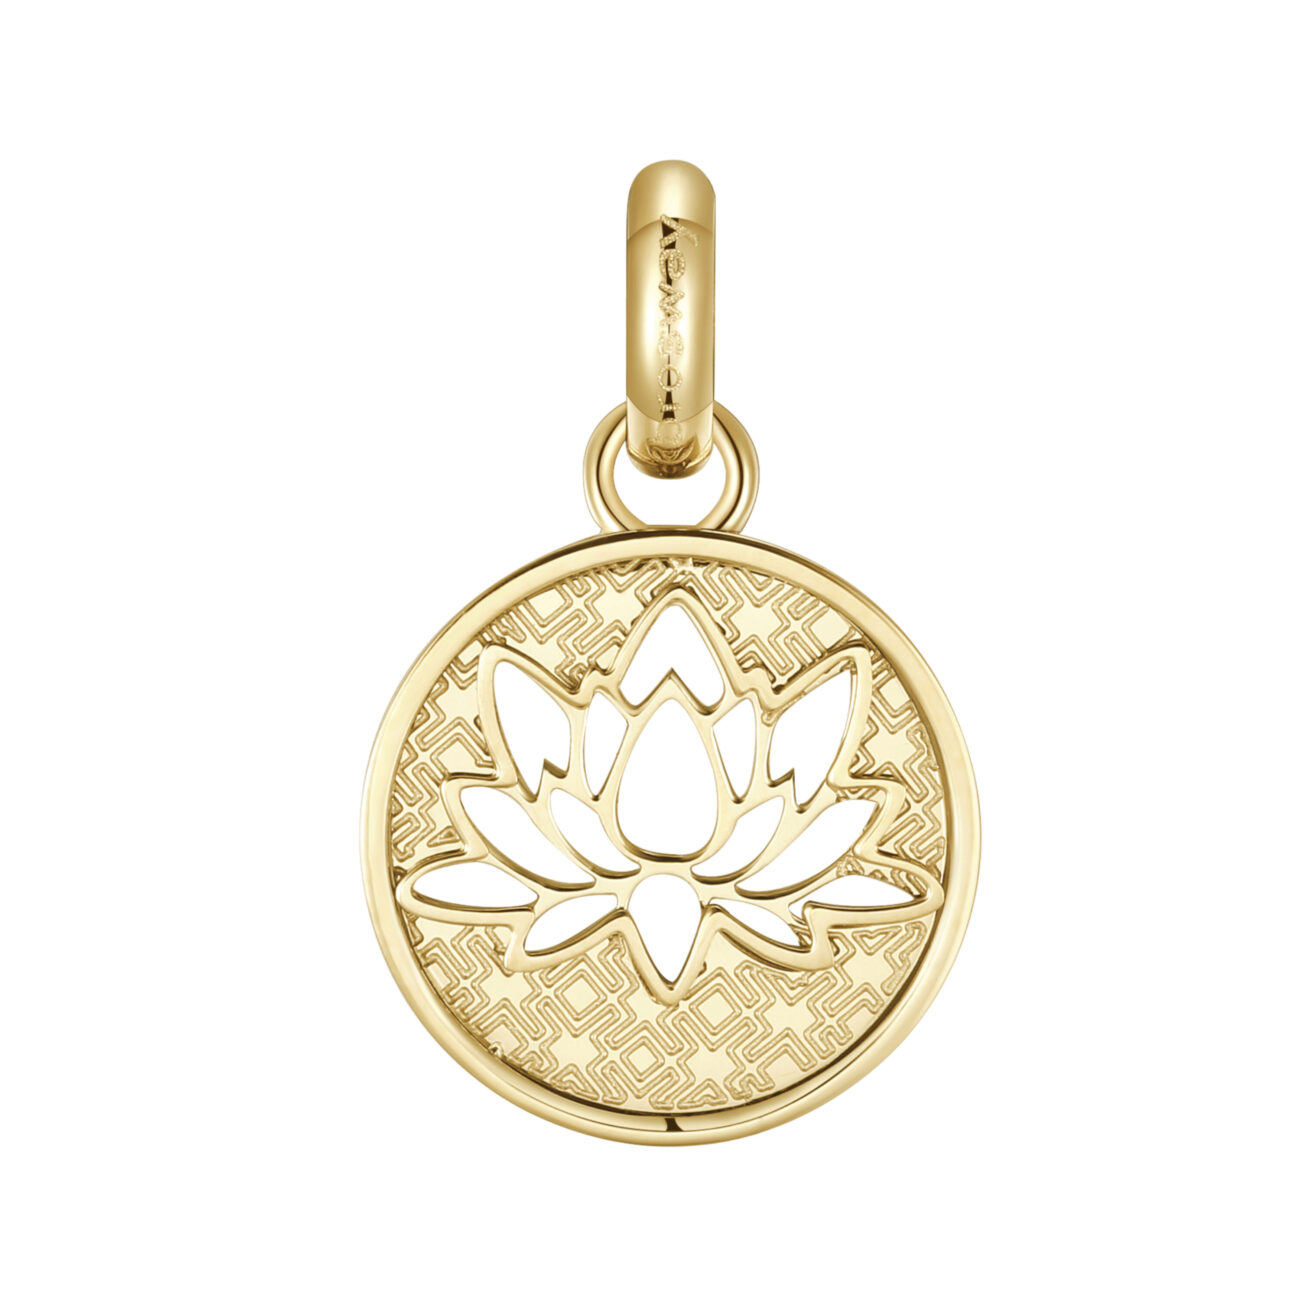 316L stainless steel and gold pvd beads with lotus flower engraving.